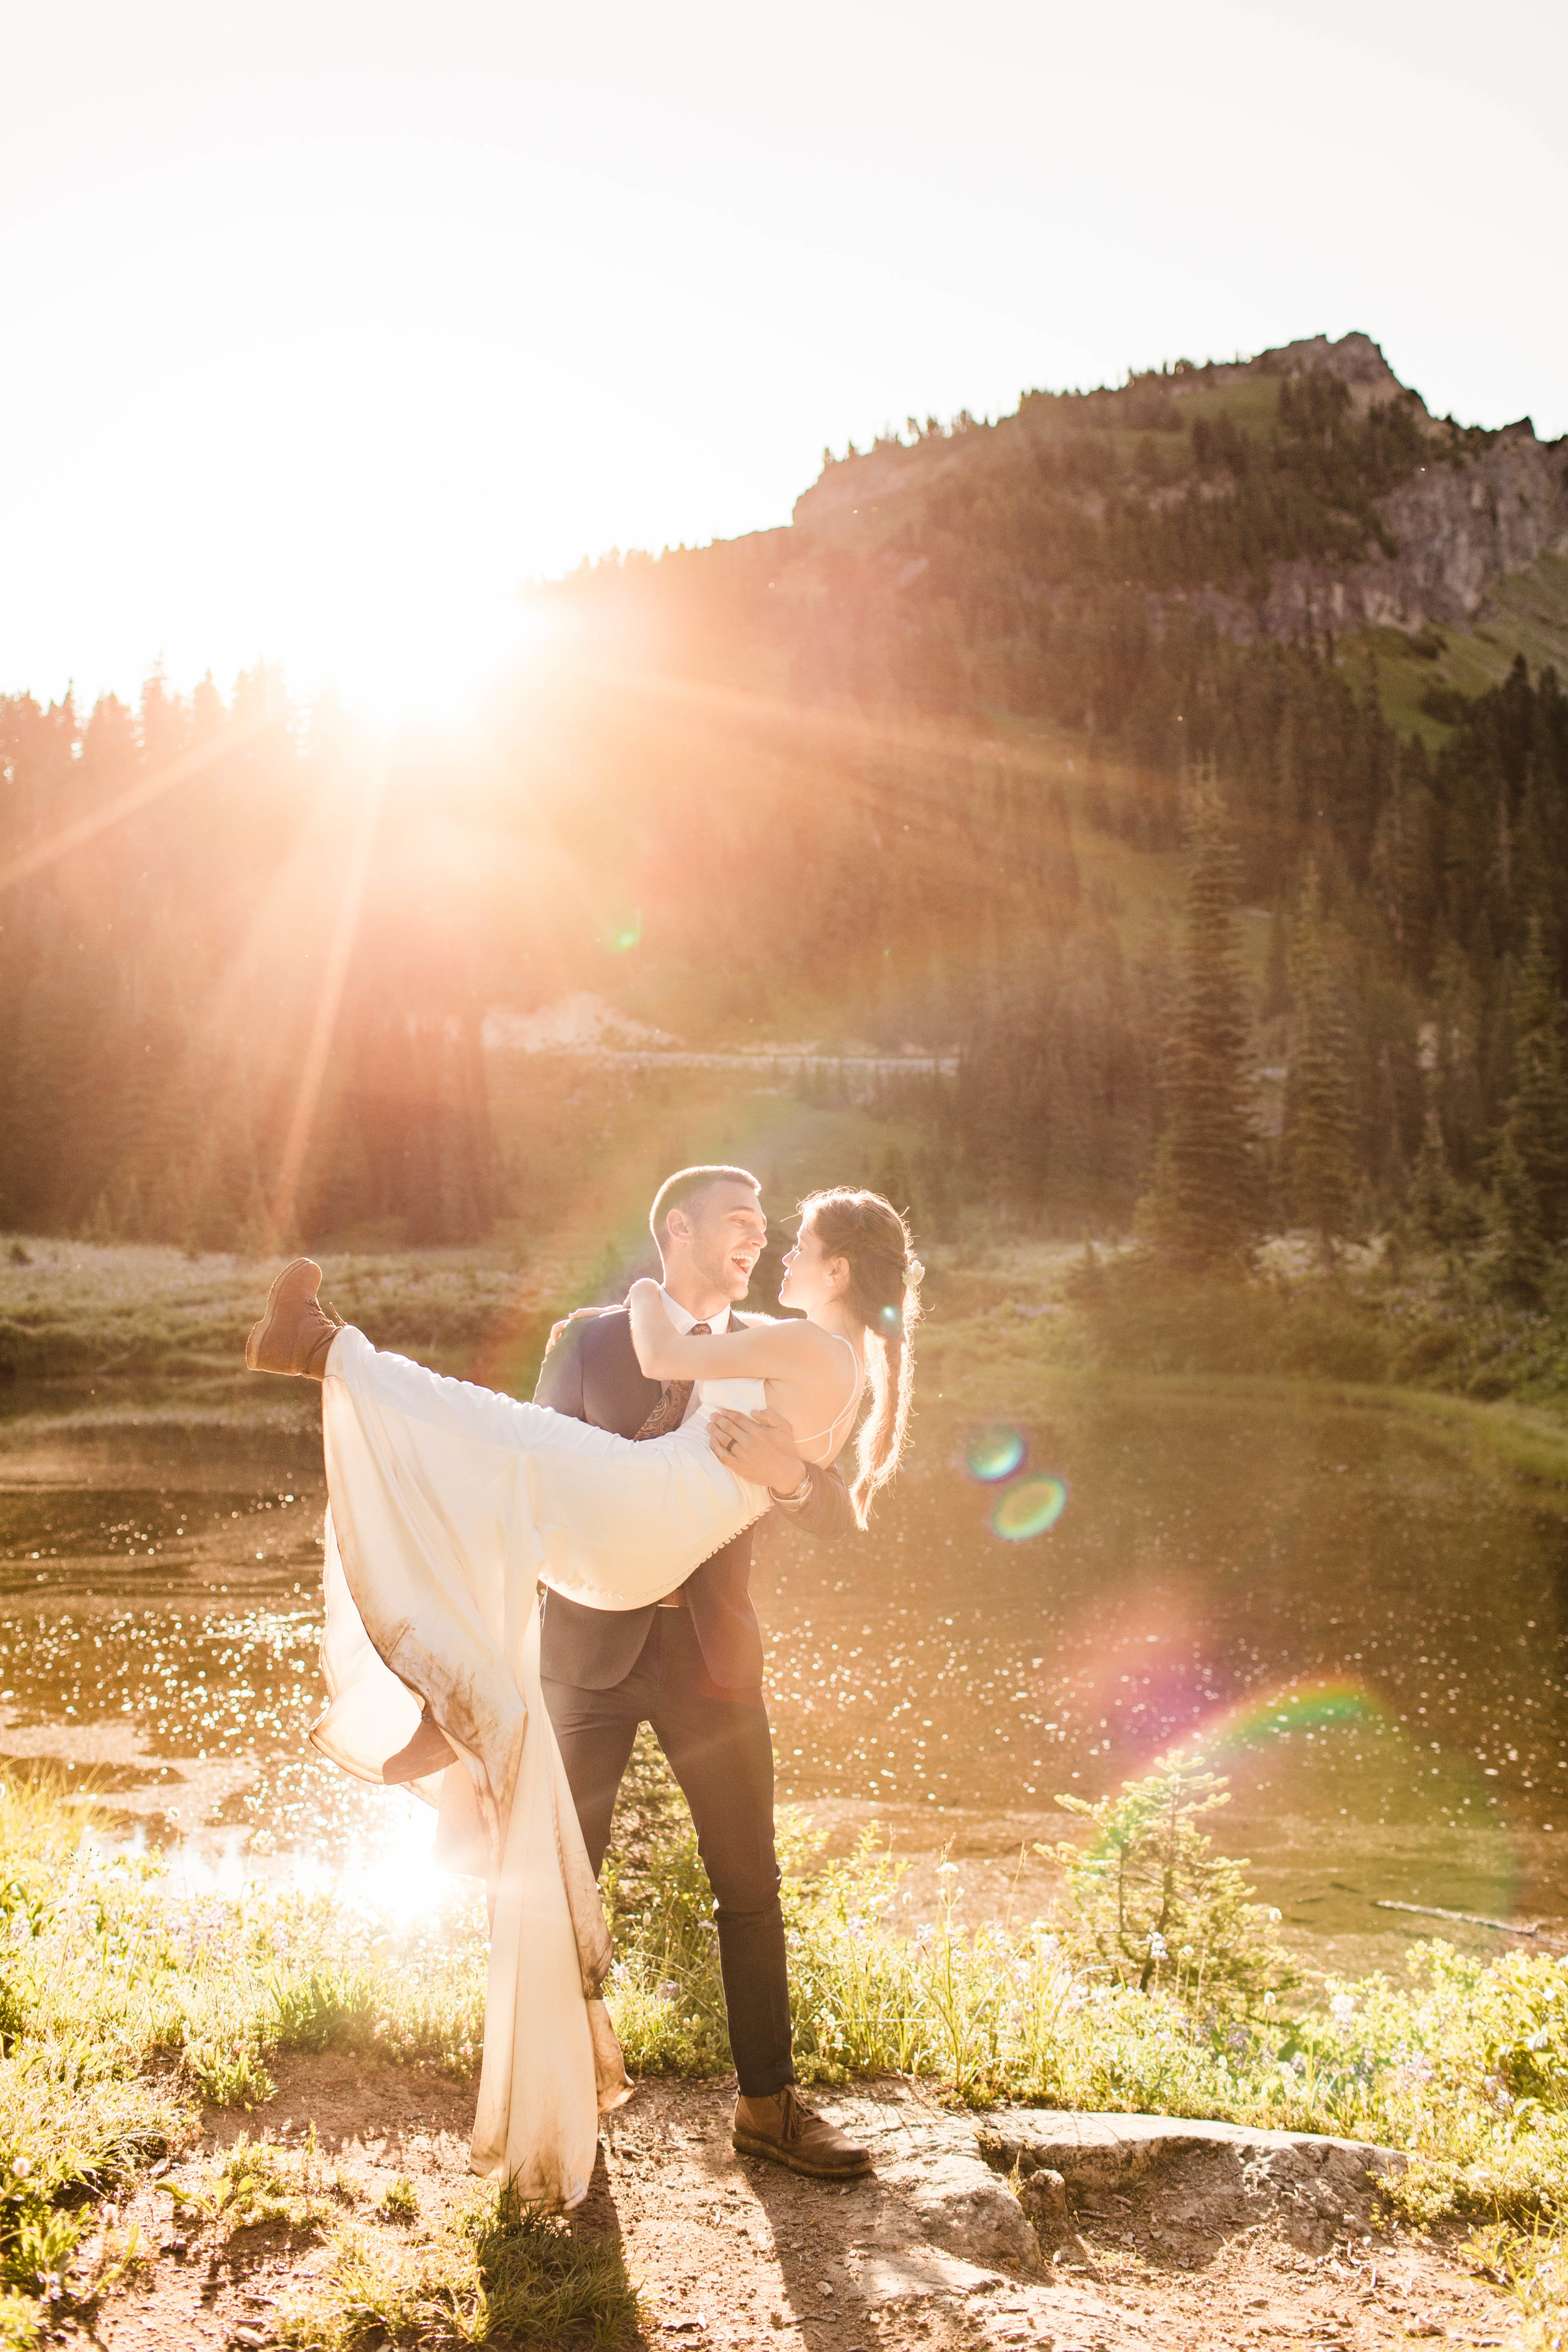 Mt Rainier National Park elopement photos in Washington state | Seattle wedding and elopement photographers